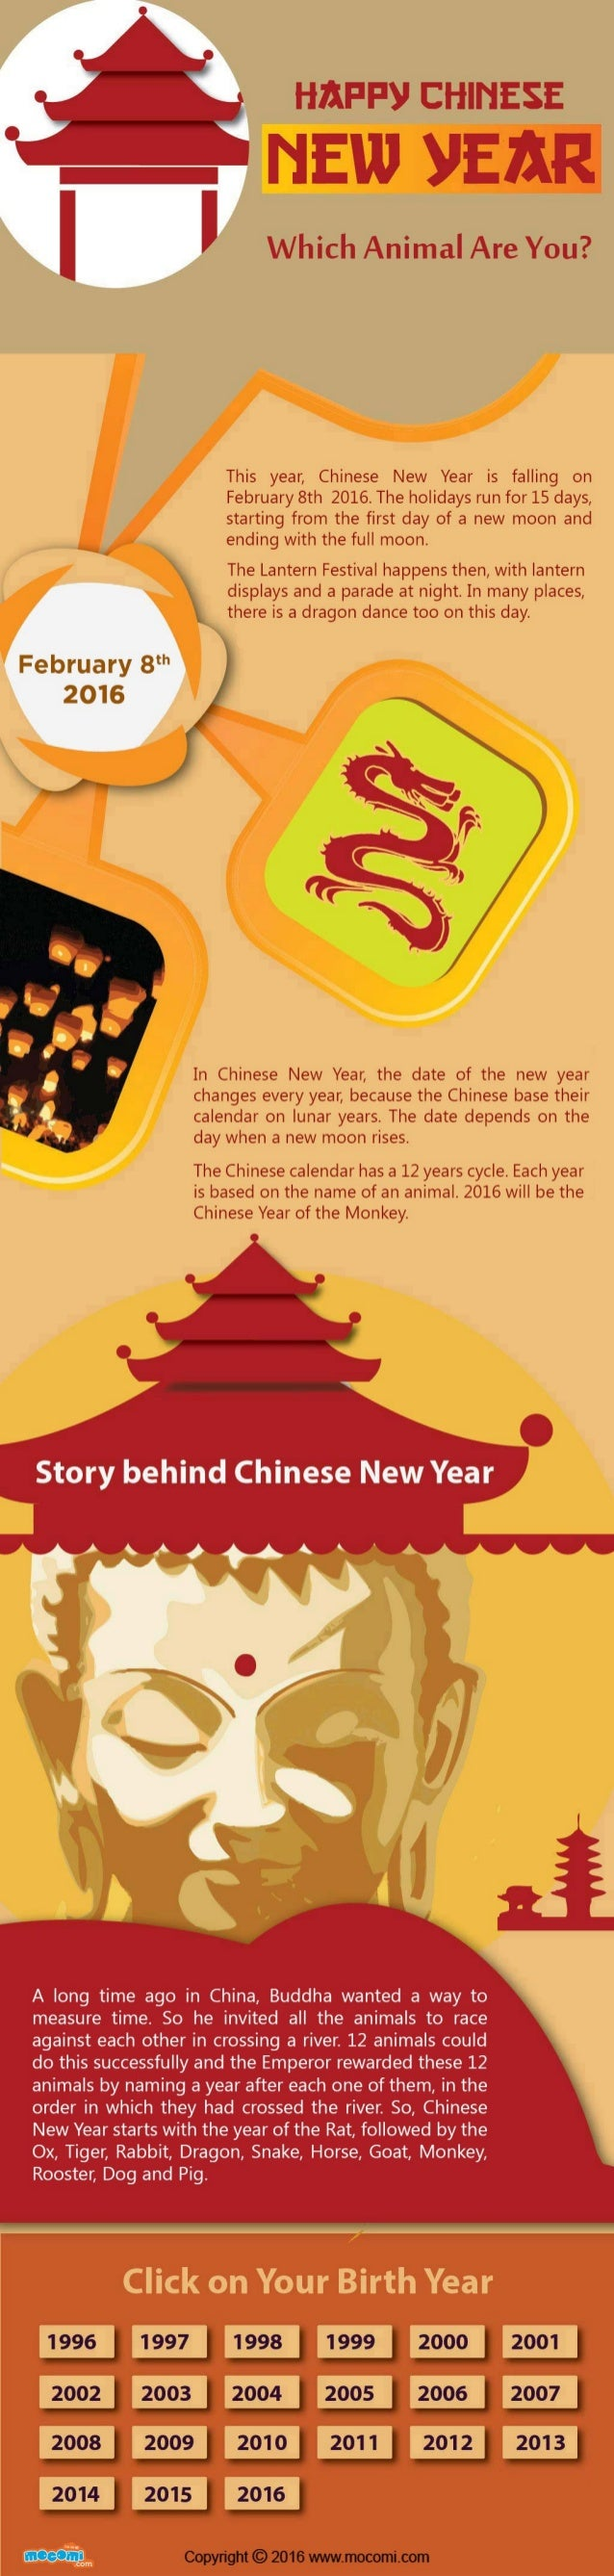 Facts and History about Chinese New Year